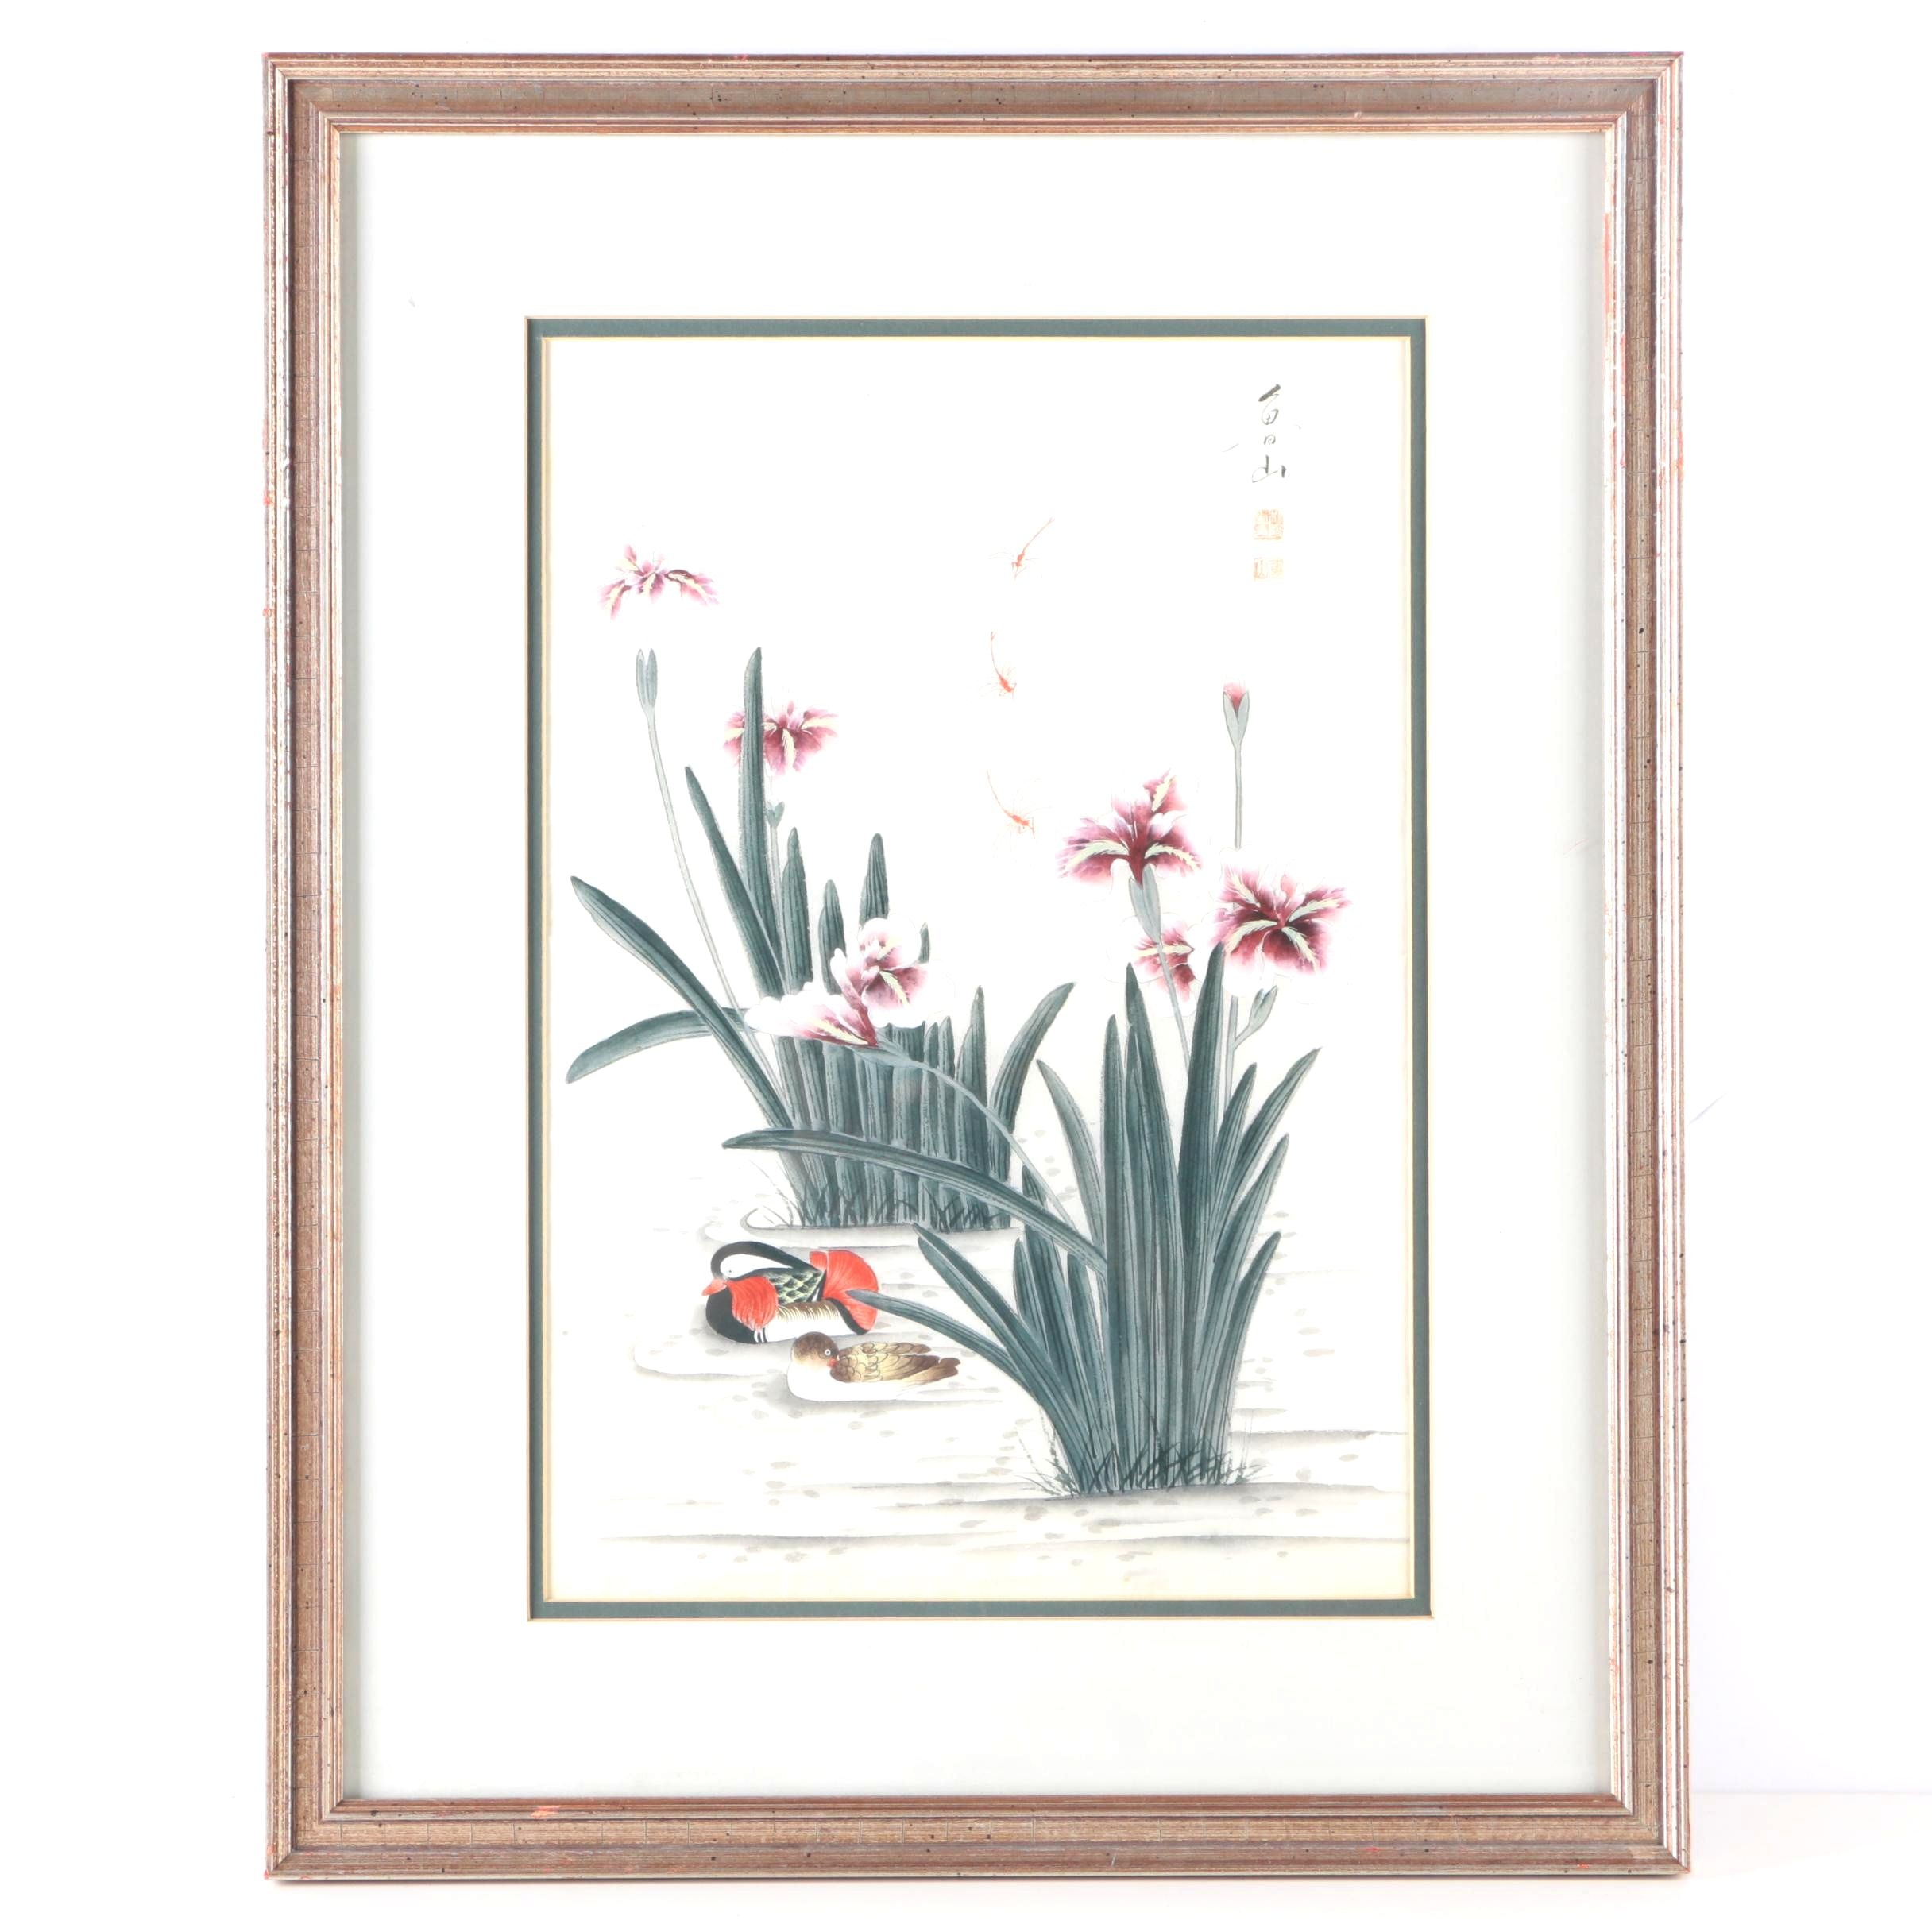 East Asian Gouache and Ink Painting of Flowers and Ducks